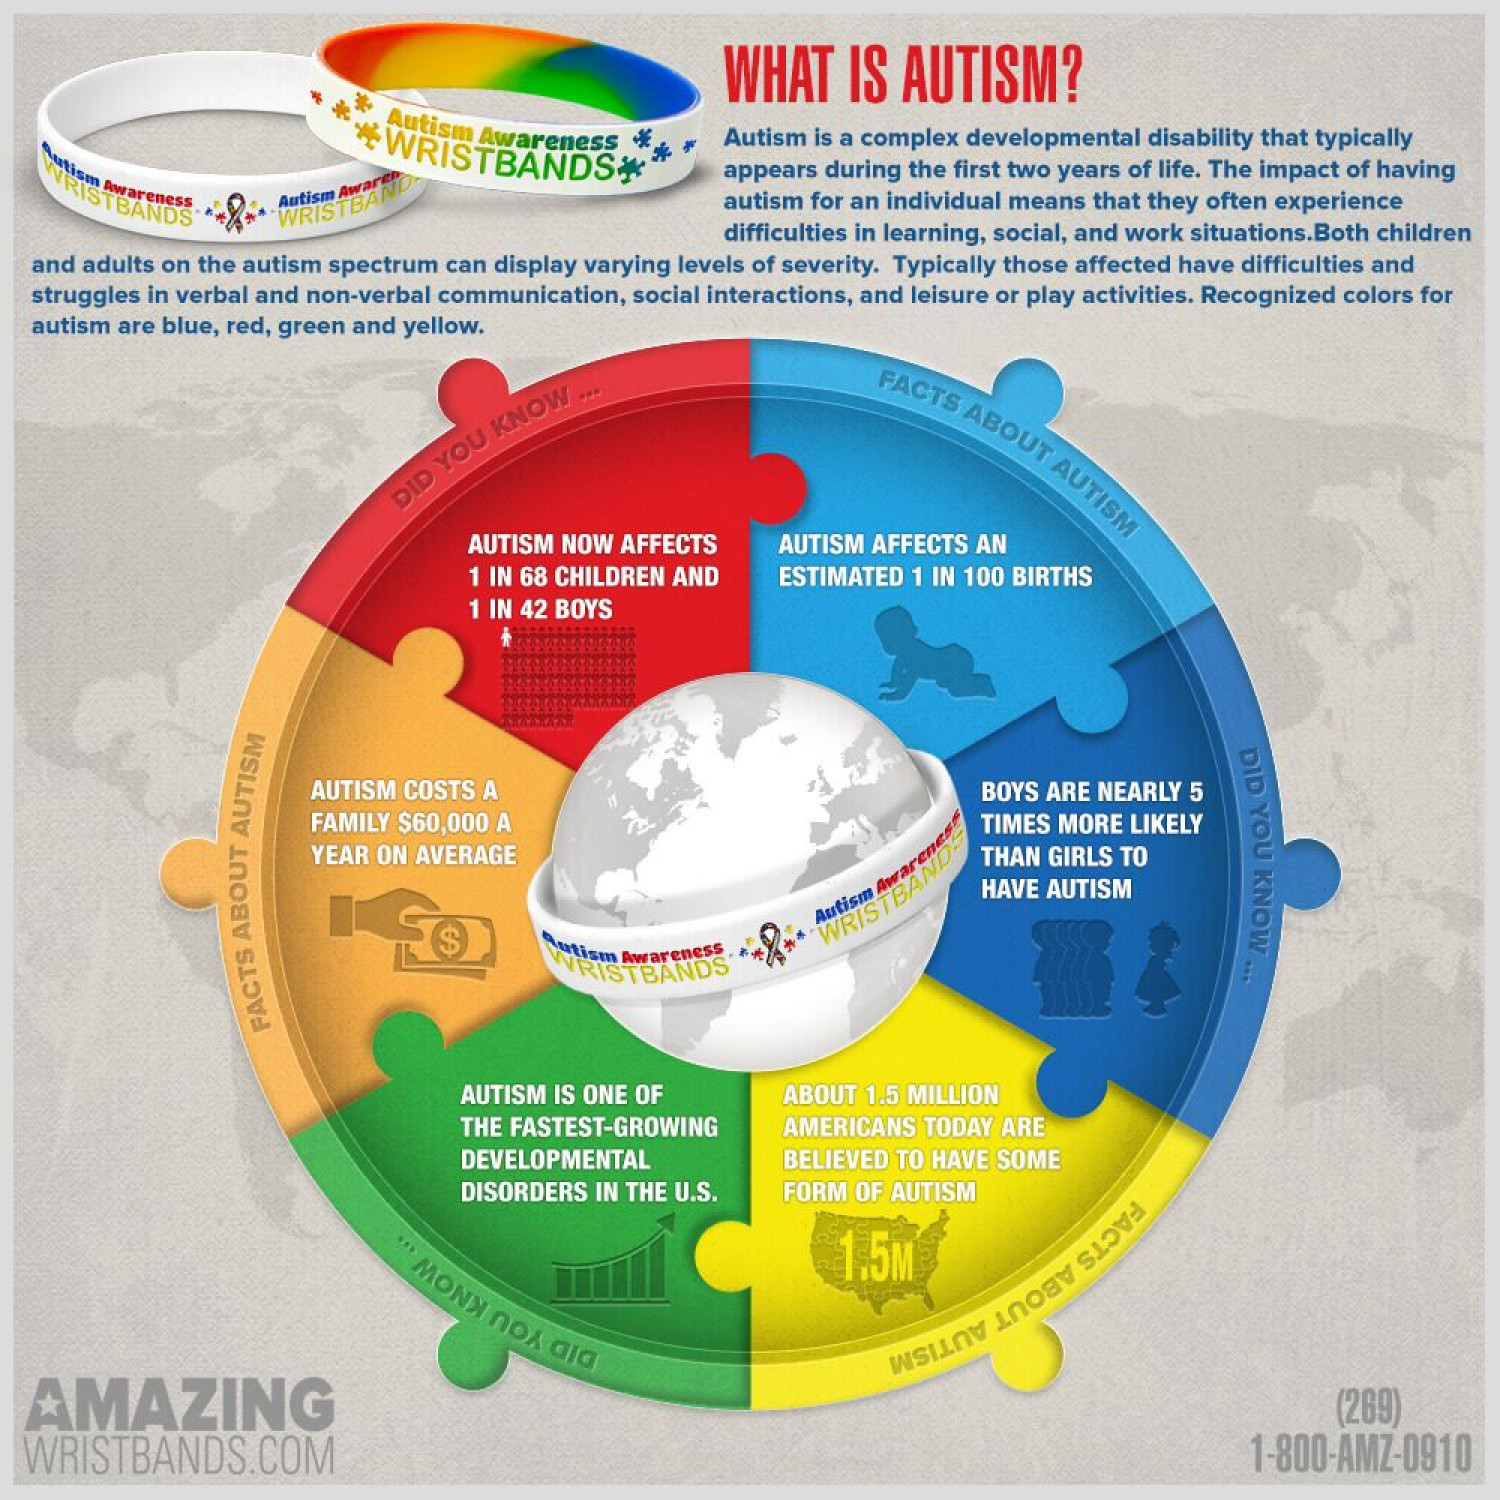 Spread Awareness for World Autism Day with Custom Wristbands Infographic